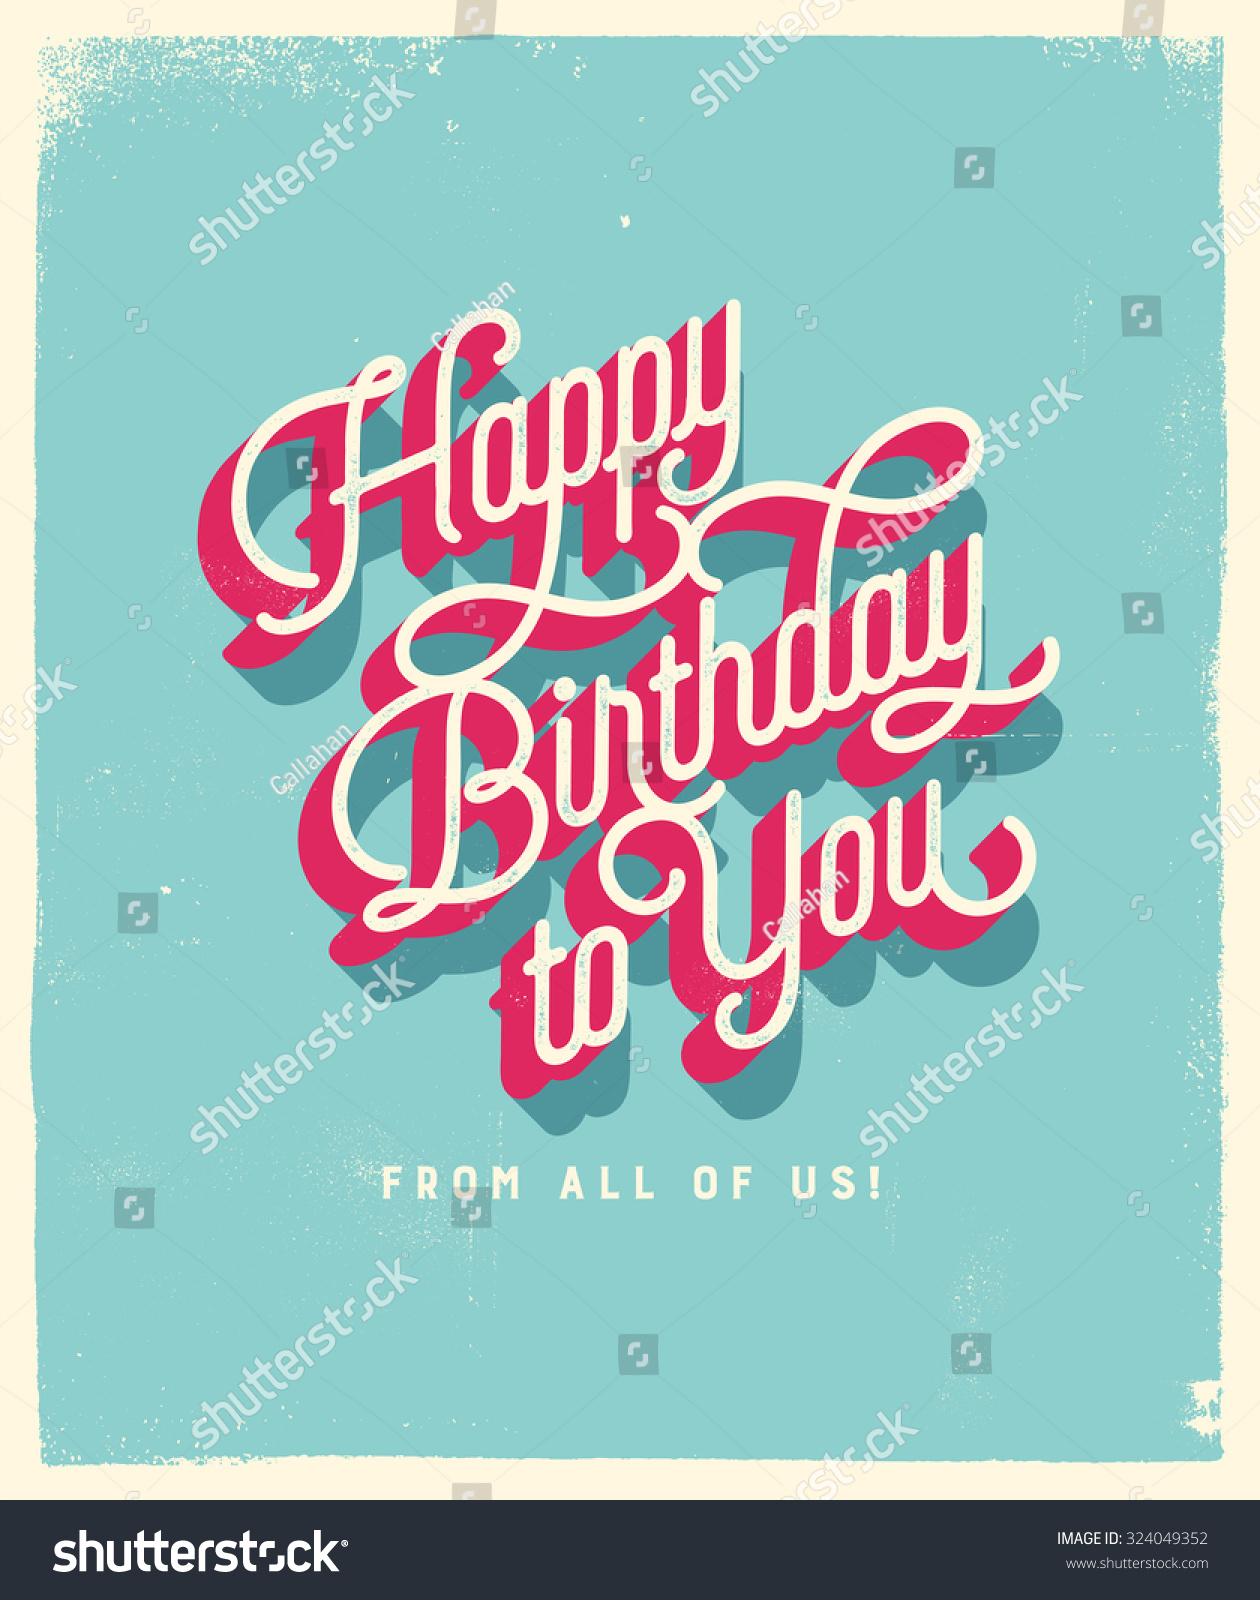 Vintage Style Birthday Card Happy Birthday to You From All of Us Vector EPS10